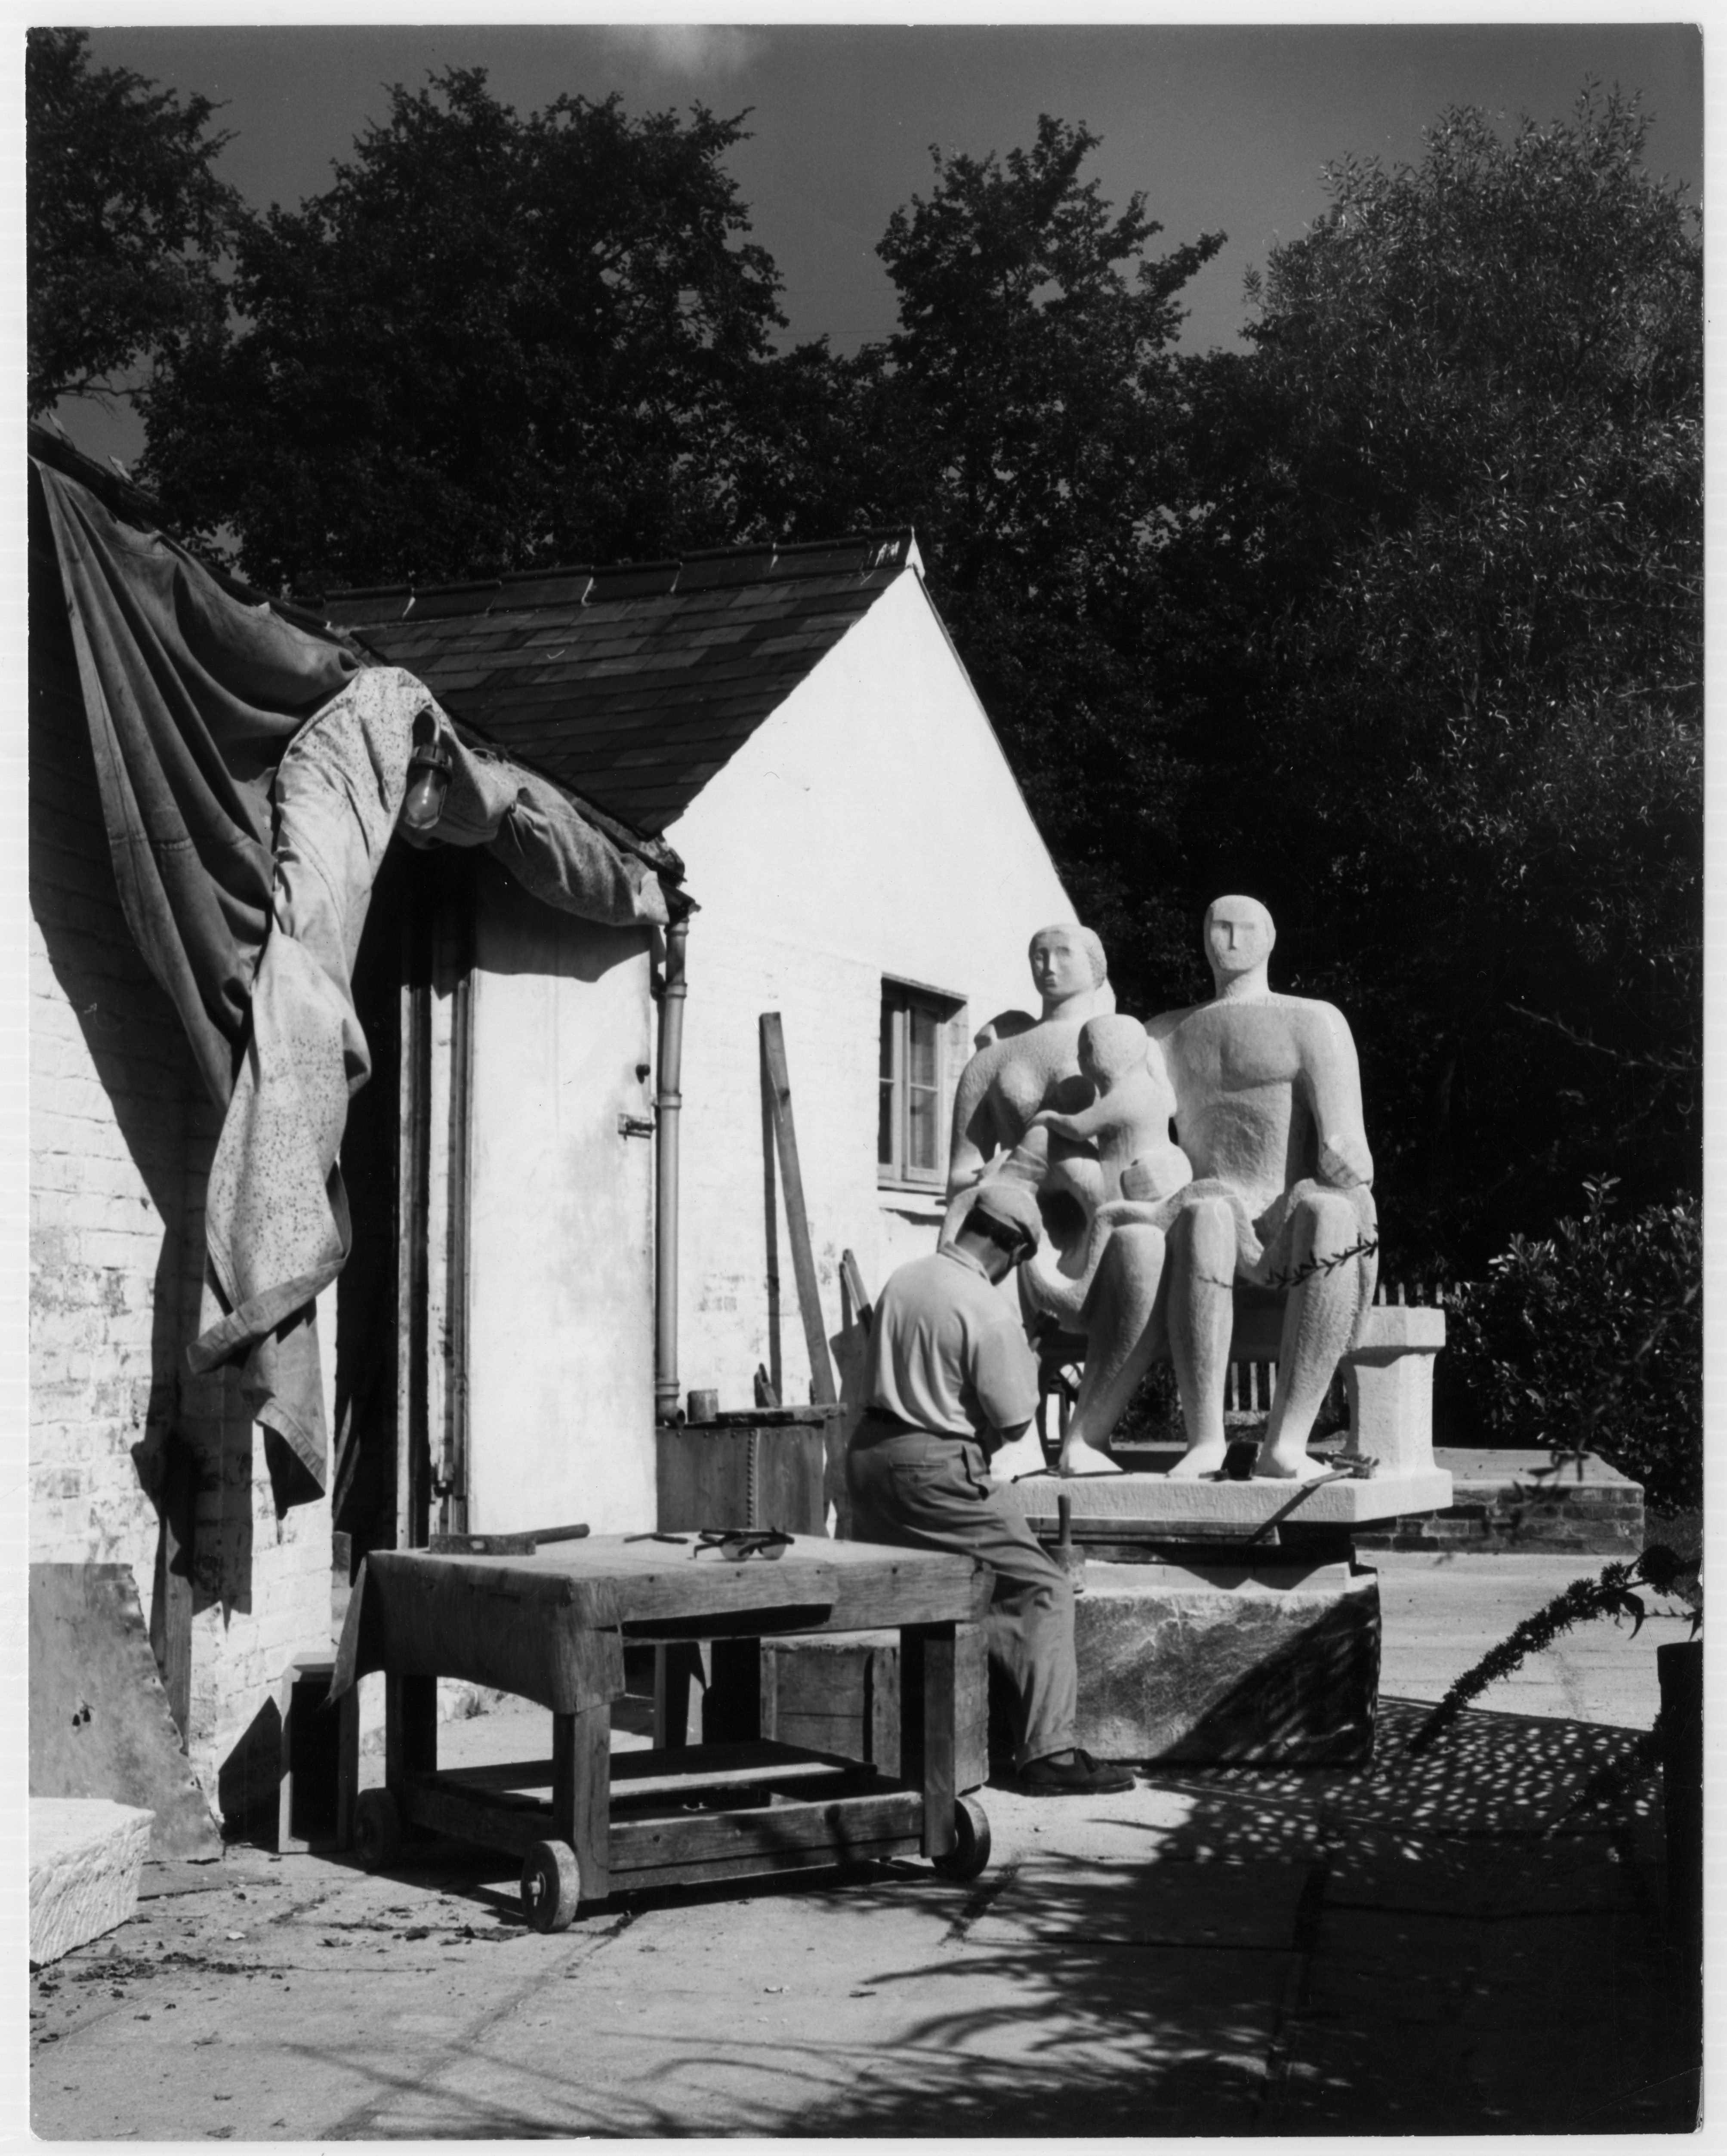 Henry Moore working on the Harlow Family Group sculpture, 1955